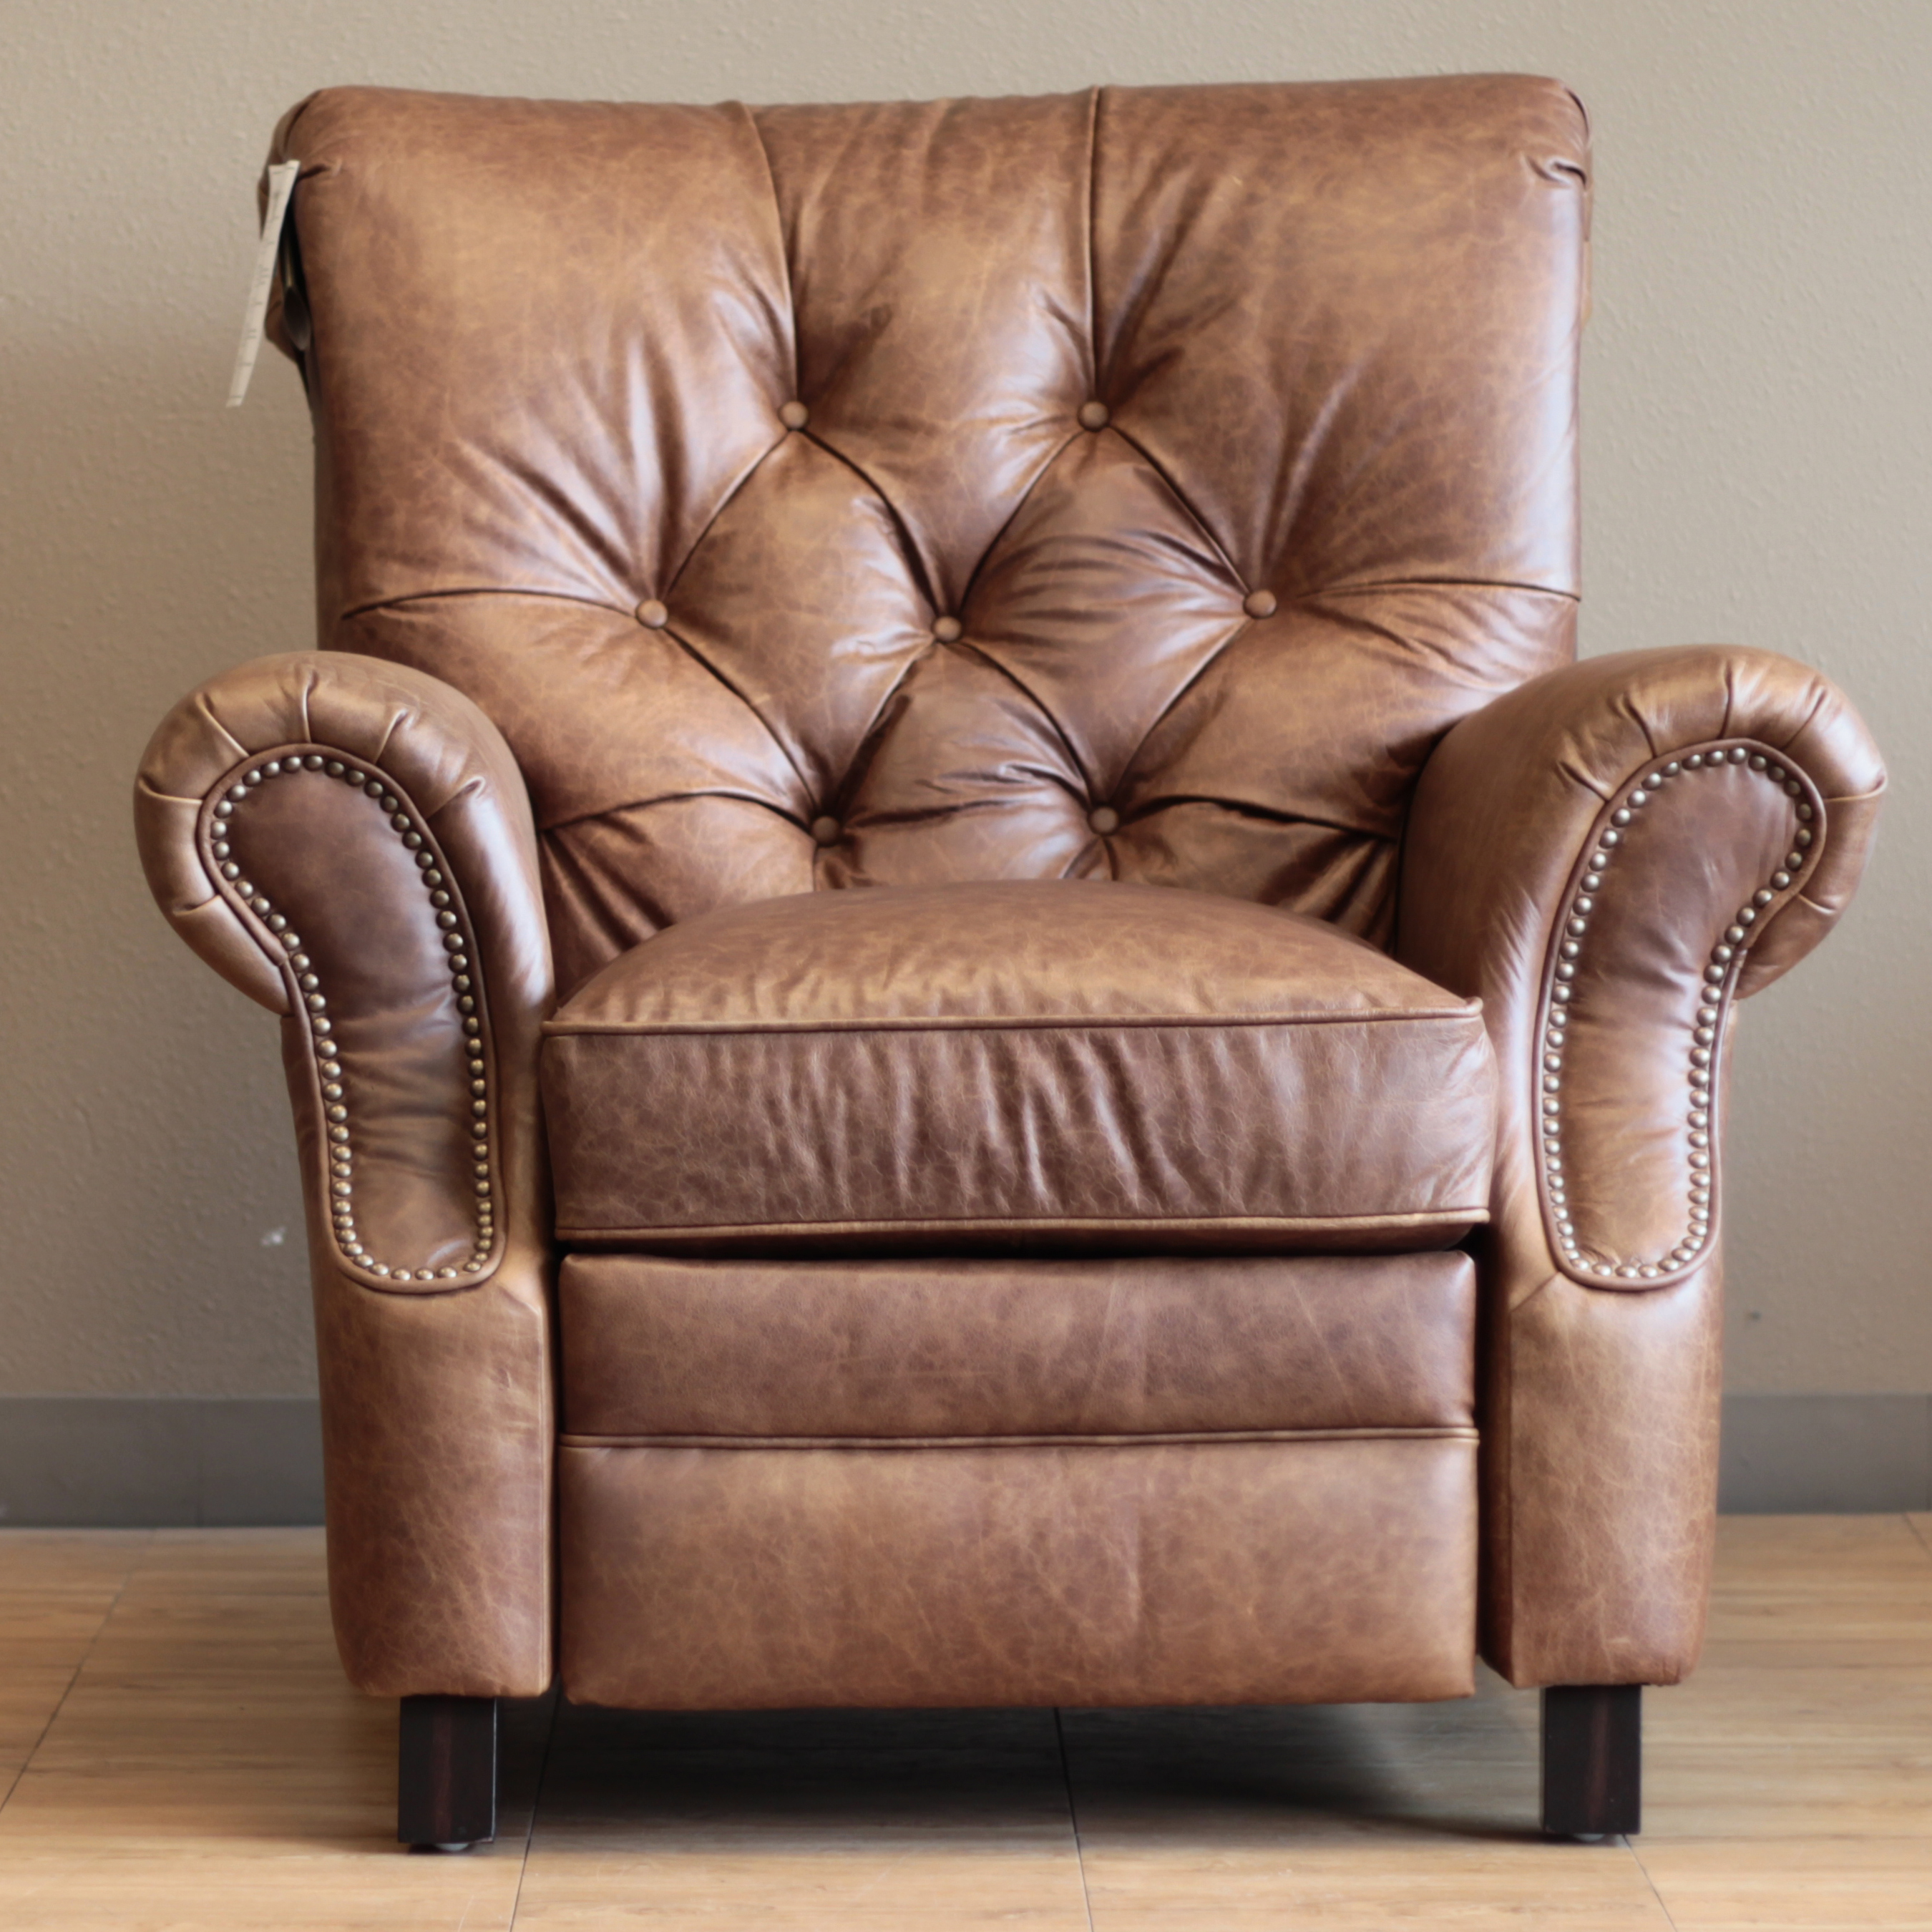 Barcalounger Phoenix II Recliner Chair Leather Recliner Chair